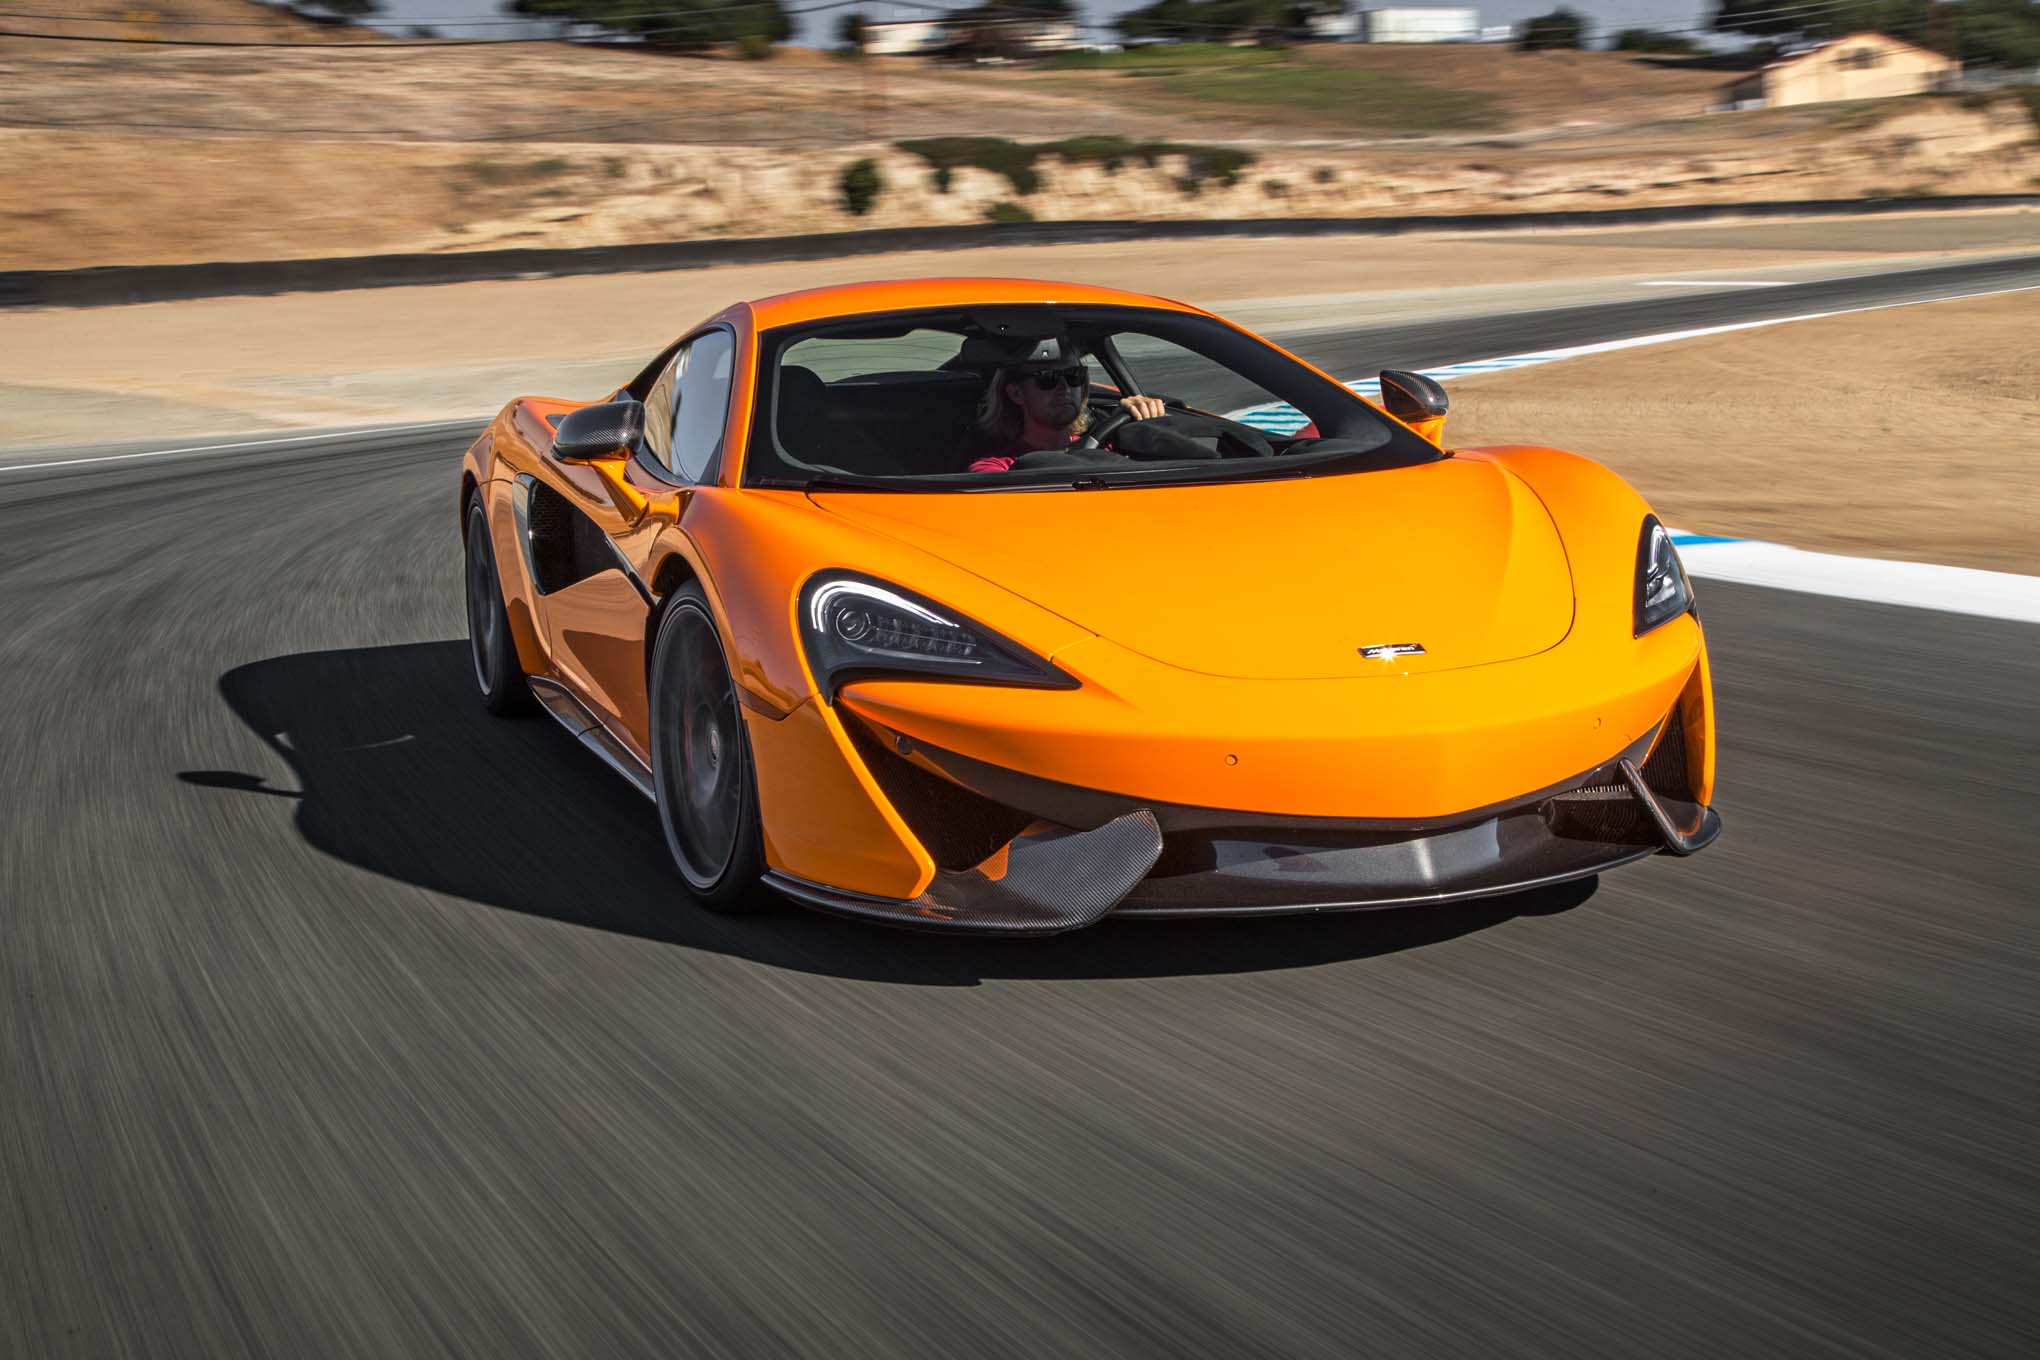 the mclaren 570s beat some serious competition to win title of best drivers car 2016 moto networks. Black Bedroom Furniture Sets. Home Design Ideas